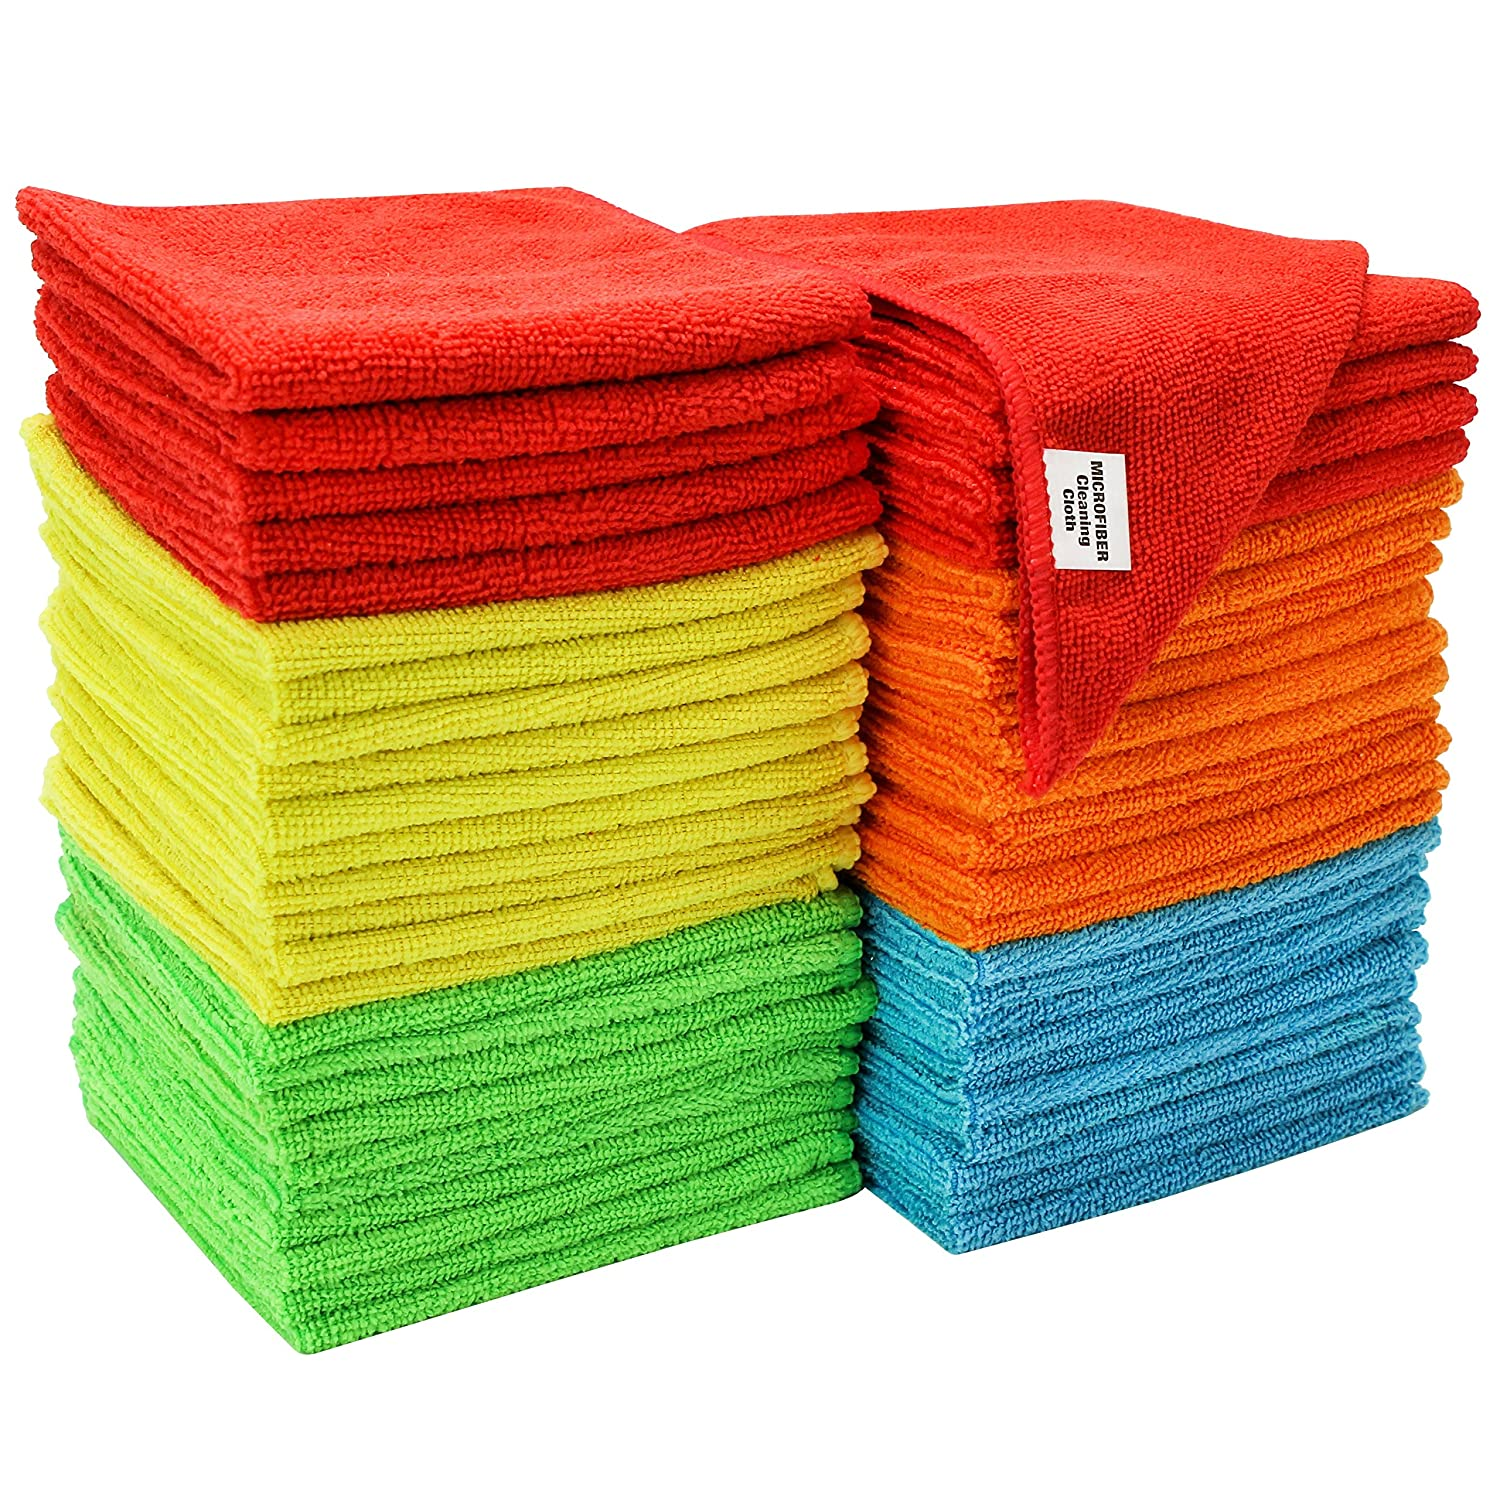 Microfiber Cloth Remove Scratches: Bulk Microfiber Cleaning Cloth Towels For Cars Kitchen